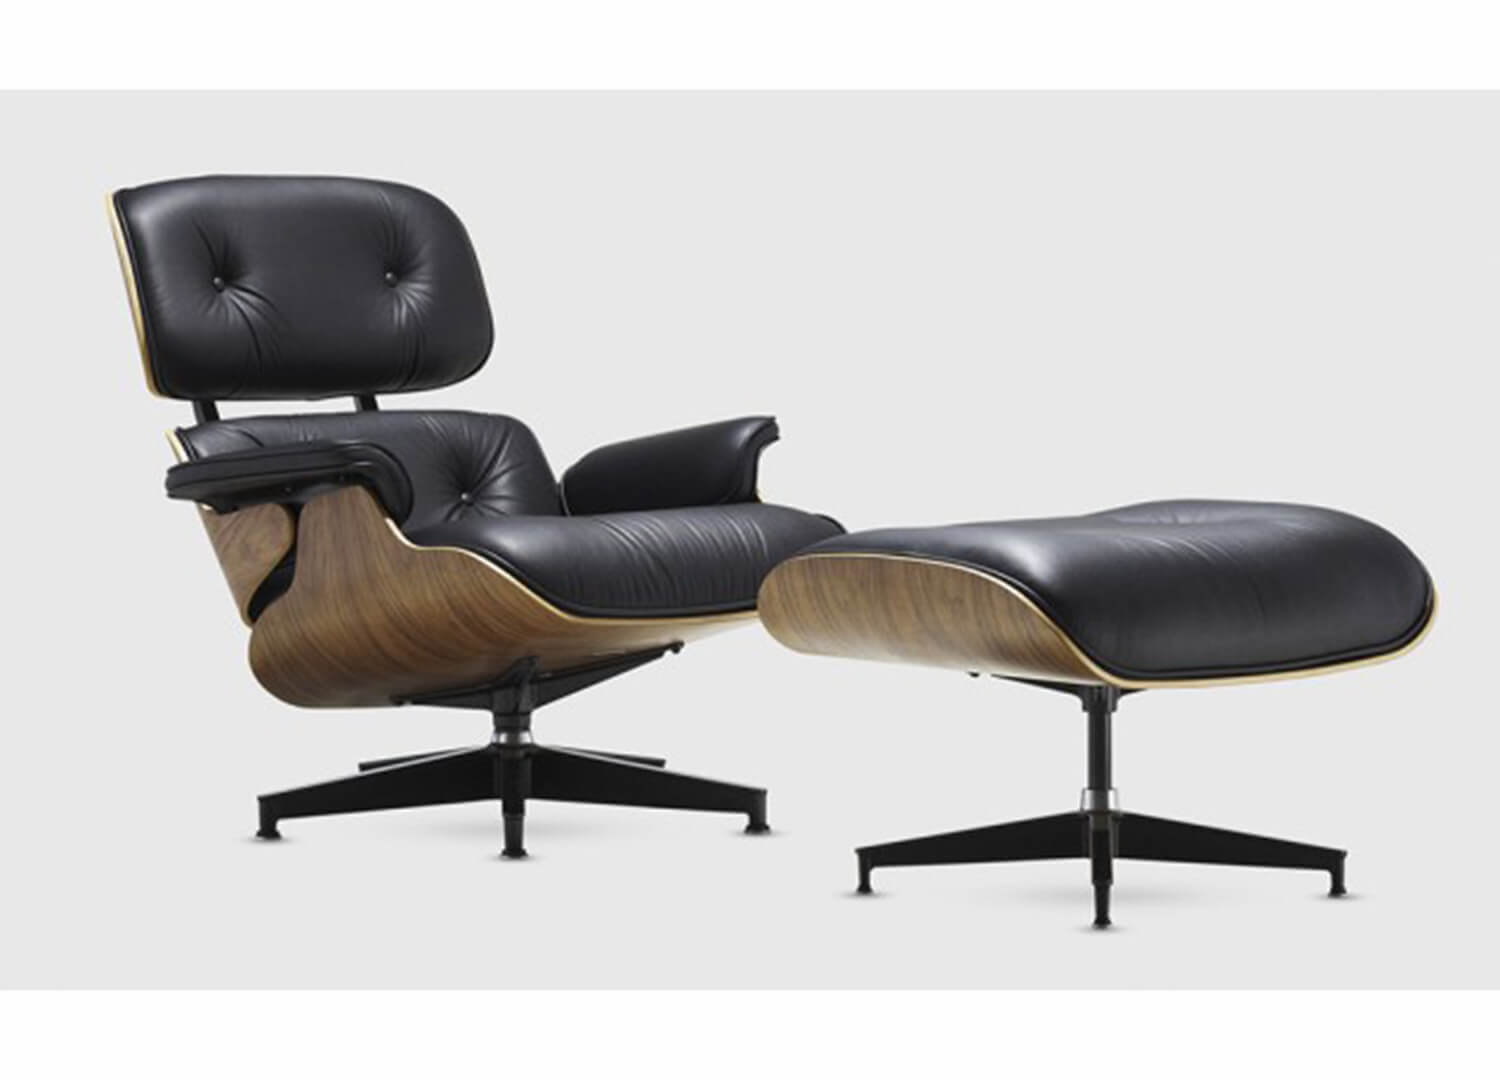 est living design directory living edge eames lounge chair.02